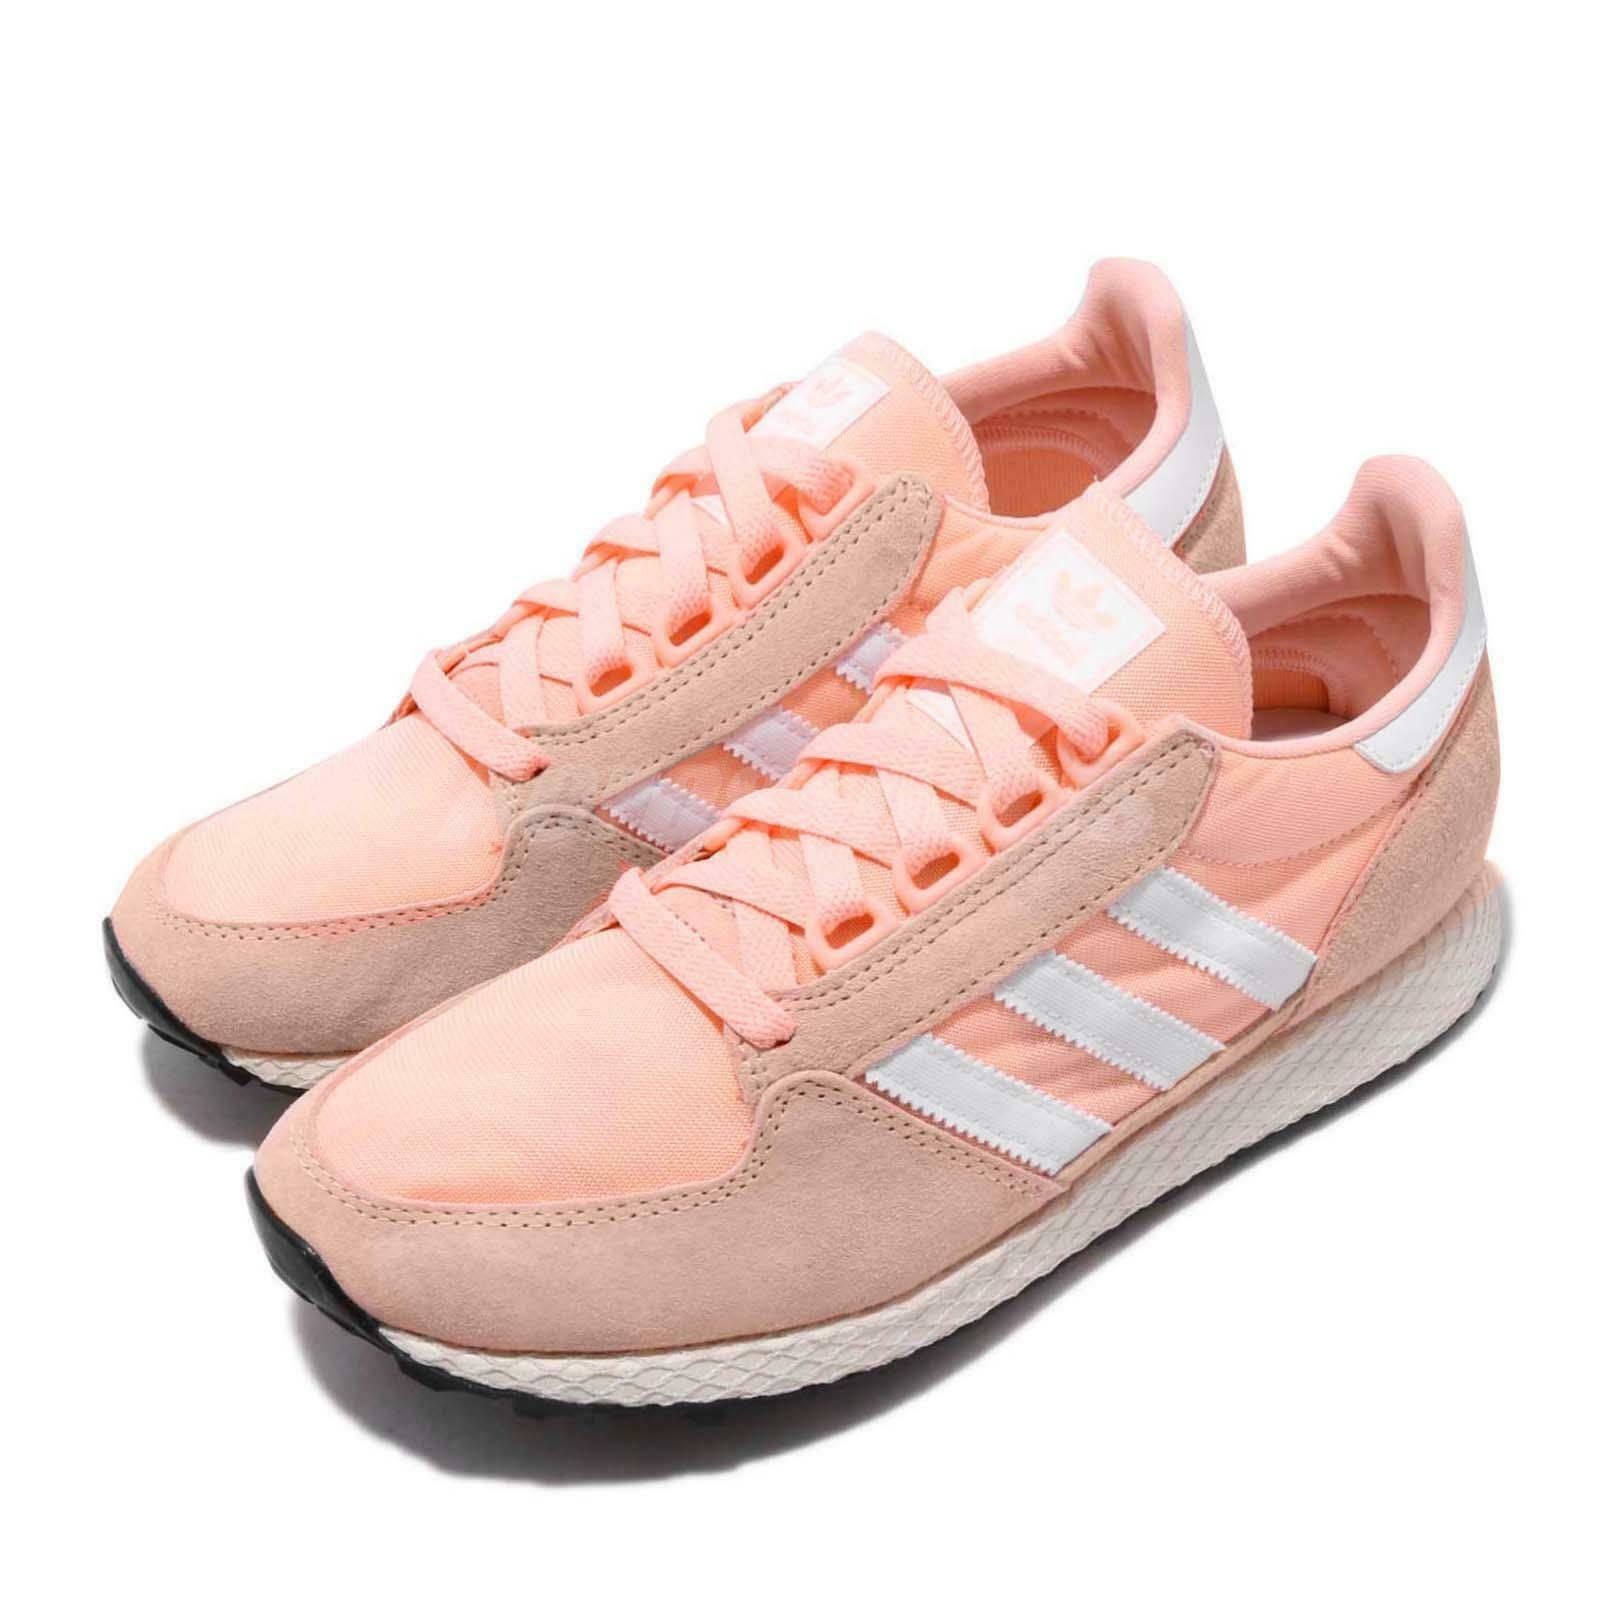 Adidas Originals  Forest Grove W Clear orange Women Running shoes Sneakers B37990  new style